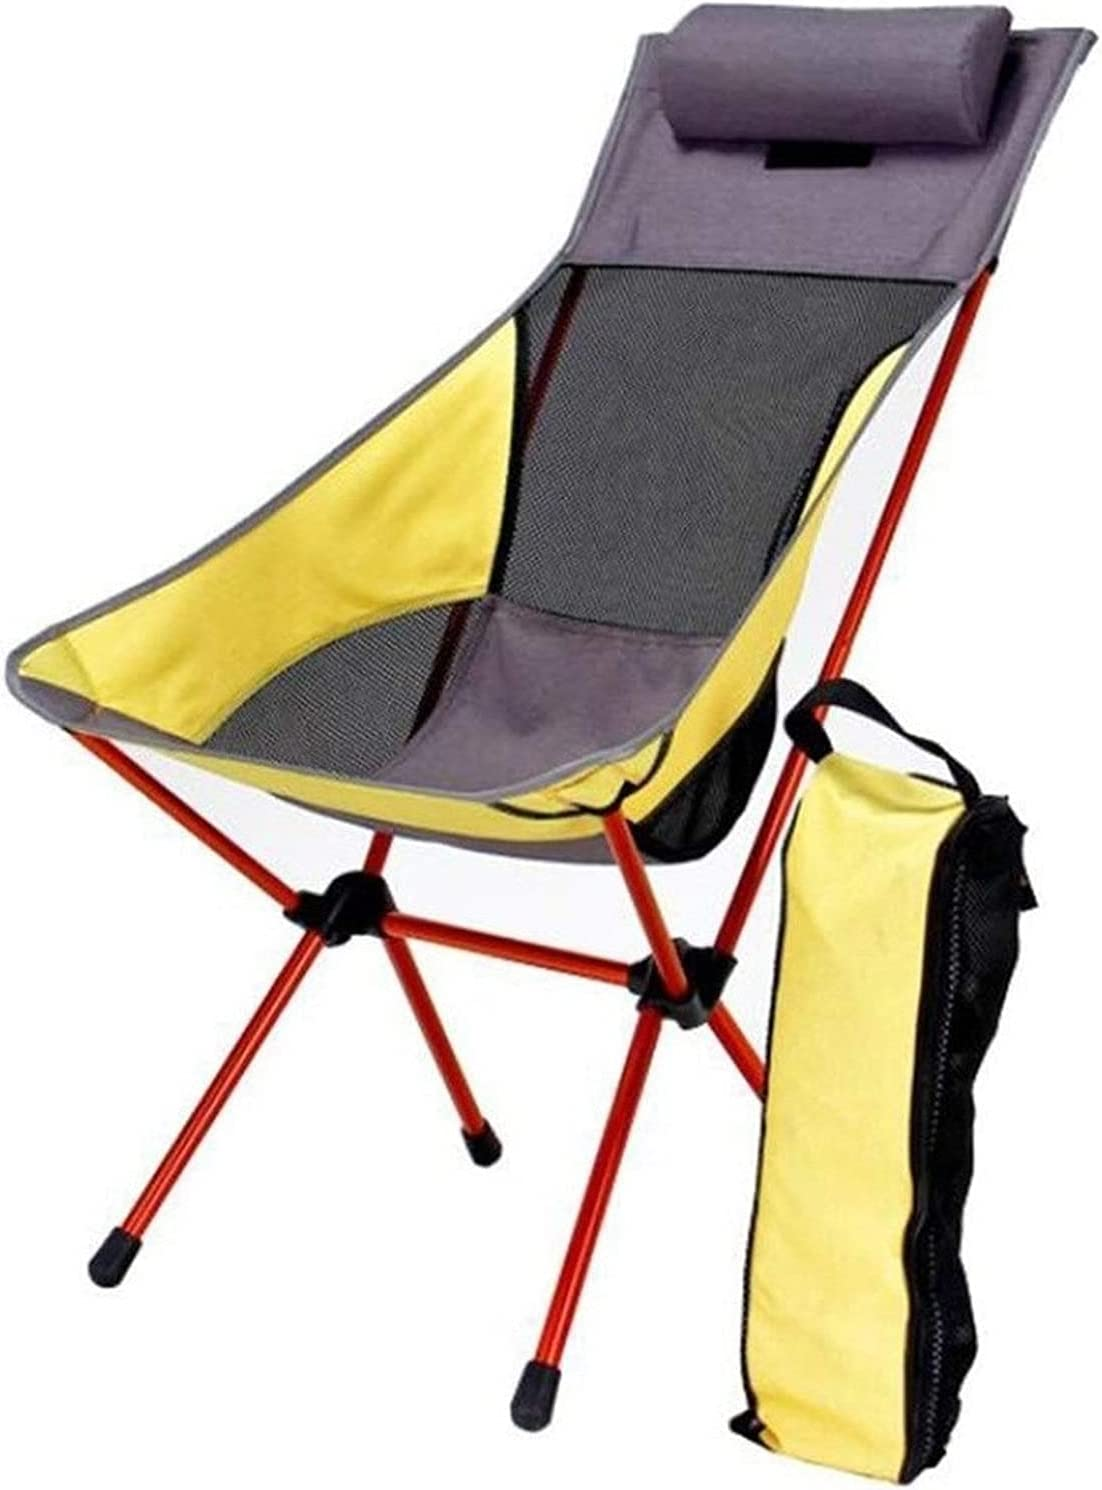 ZXNRTU Ranking TOP19 Safe Sturdy Comfy Folding Outdoor Boston Mall Camping Chair-Durable